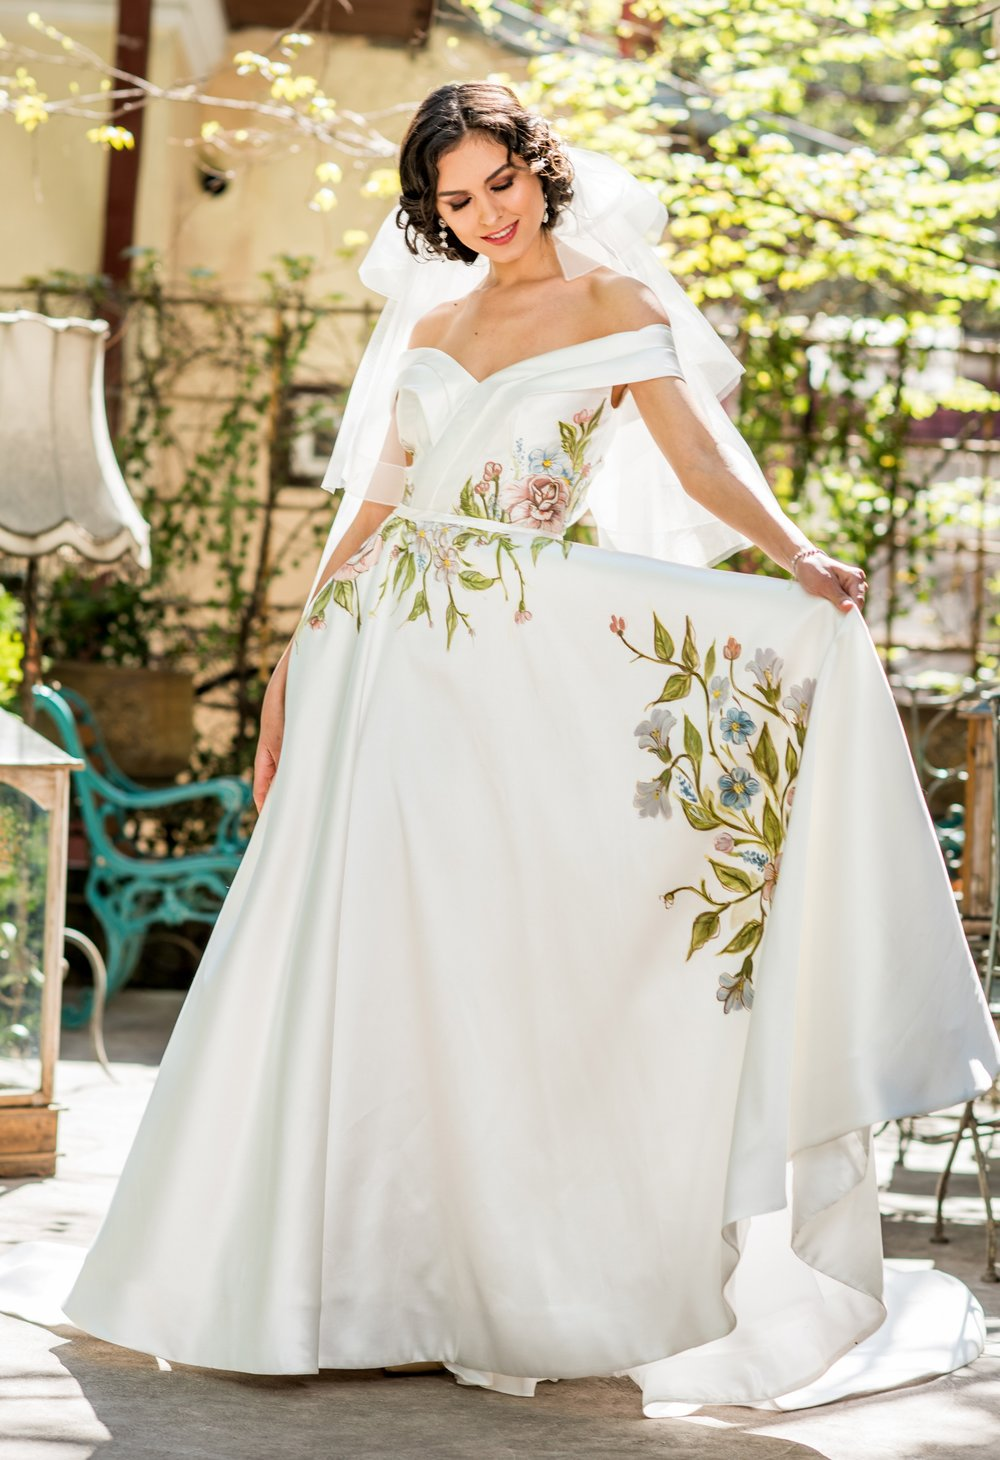 Wear Jardin, a hand-painted wedding dress